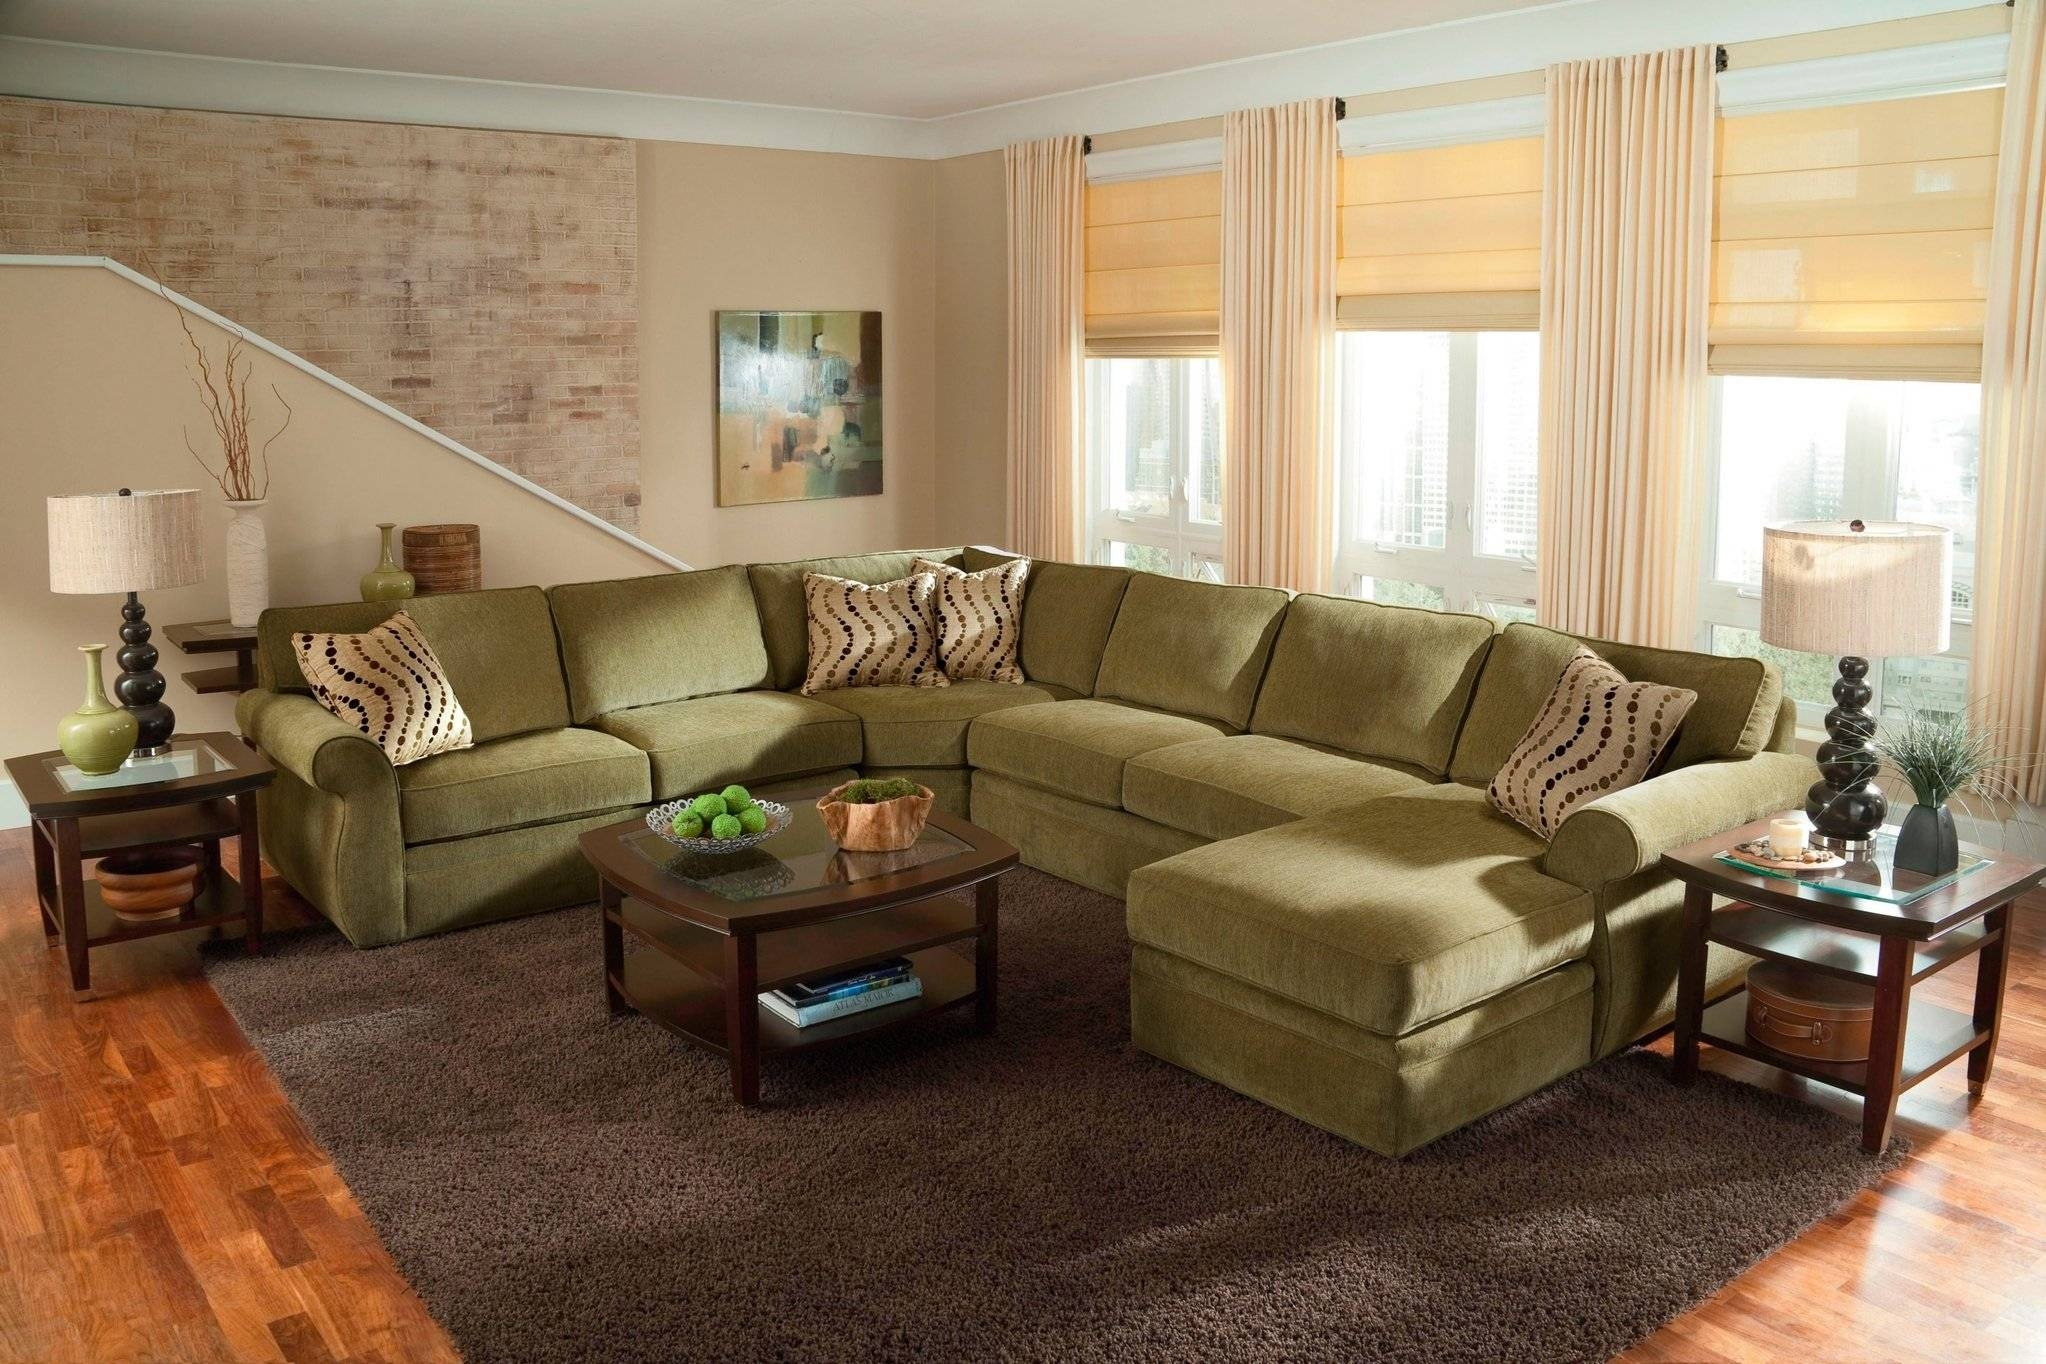 Interior: Luxury Oversized Sectional Sofa For Awesome Living Room regarding Extra Large Sectional Sofas (Image 17 of 30)